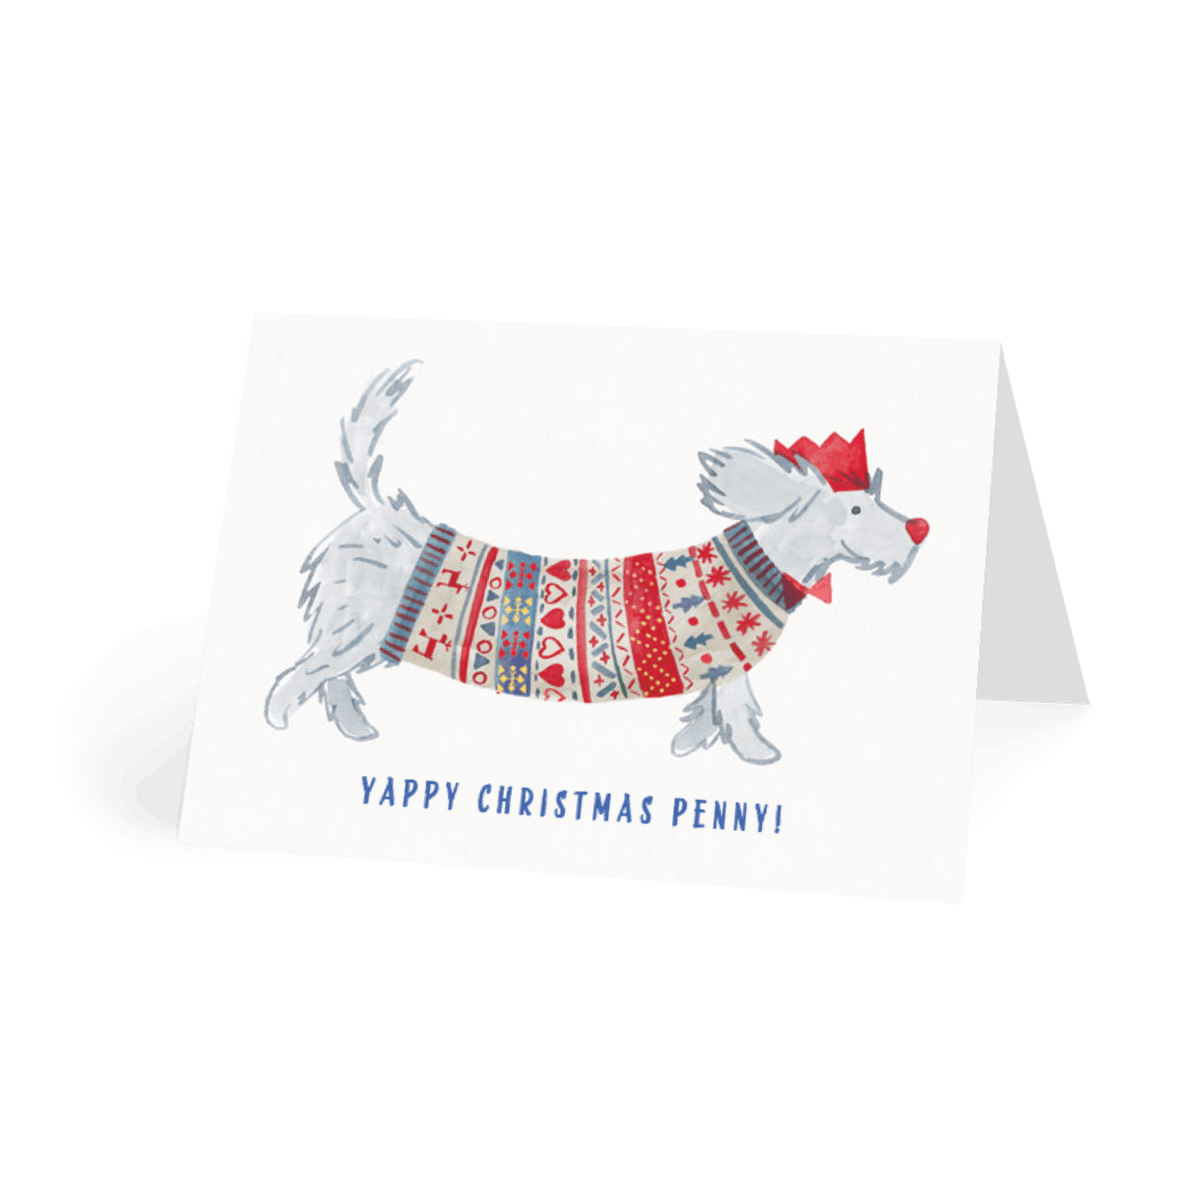 Https%3a%2f%2fwww.papier.com%2fproduct image%2f8510%2f14%2fchristmas dog 2110 front 1540197907.png?ixlib=rb 1.1